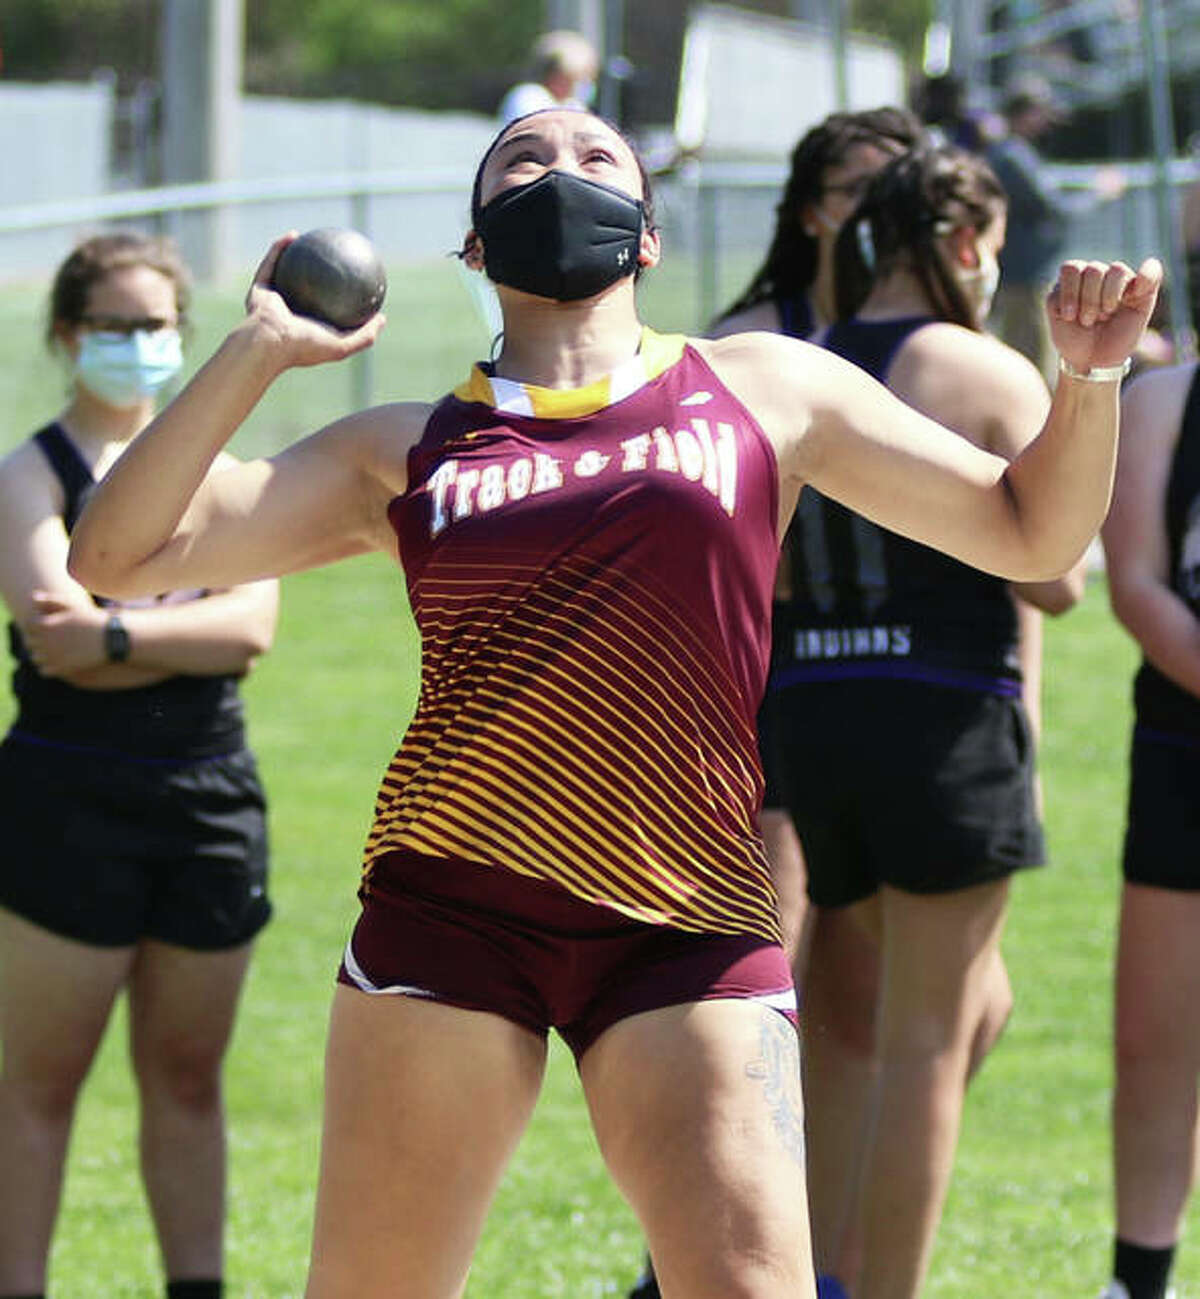 EA-WR's Jayden Ulrich gets off a throw for a school-record 48-6 in the shot put Monday afternoon in a four-team meet at Bethalto.